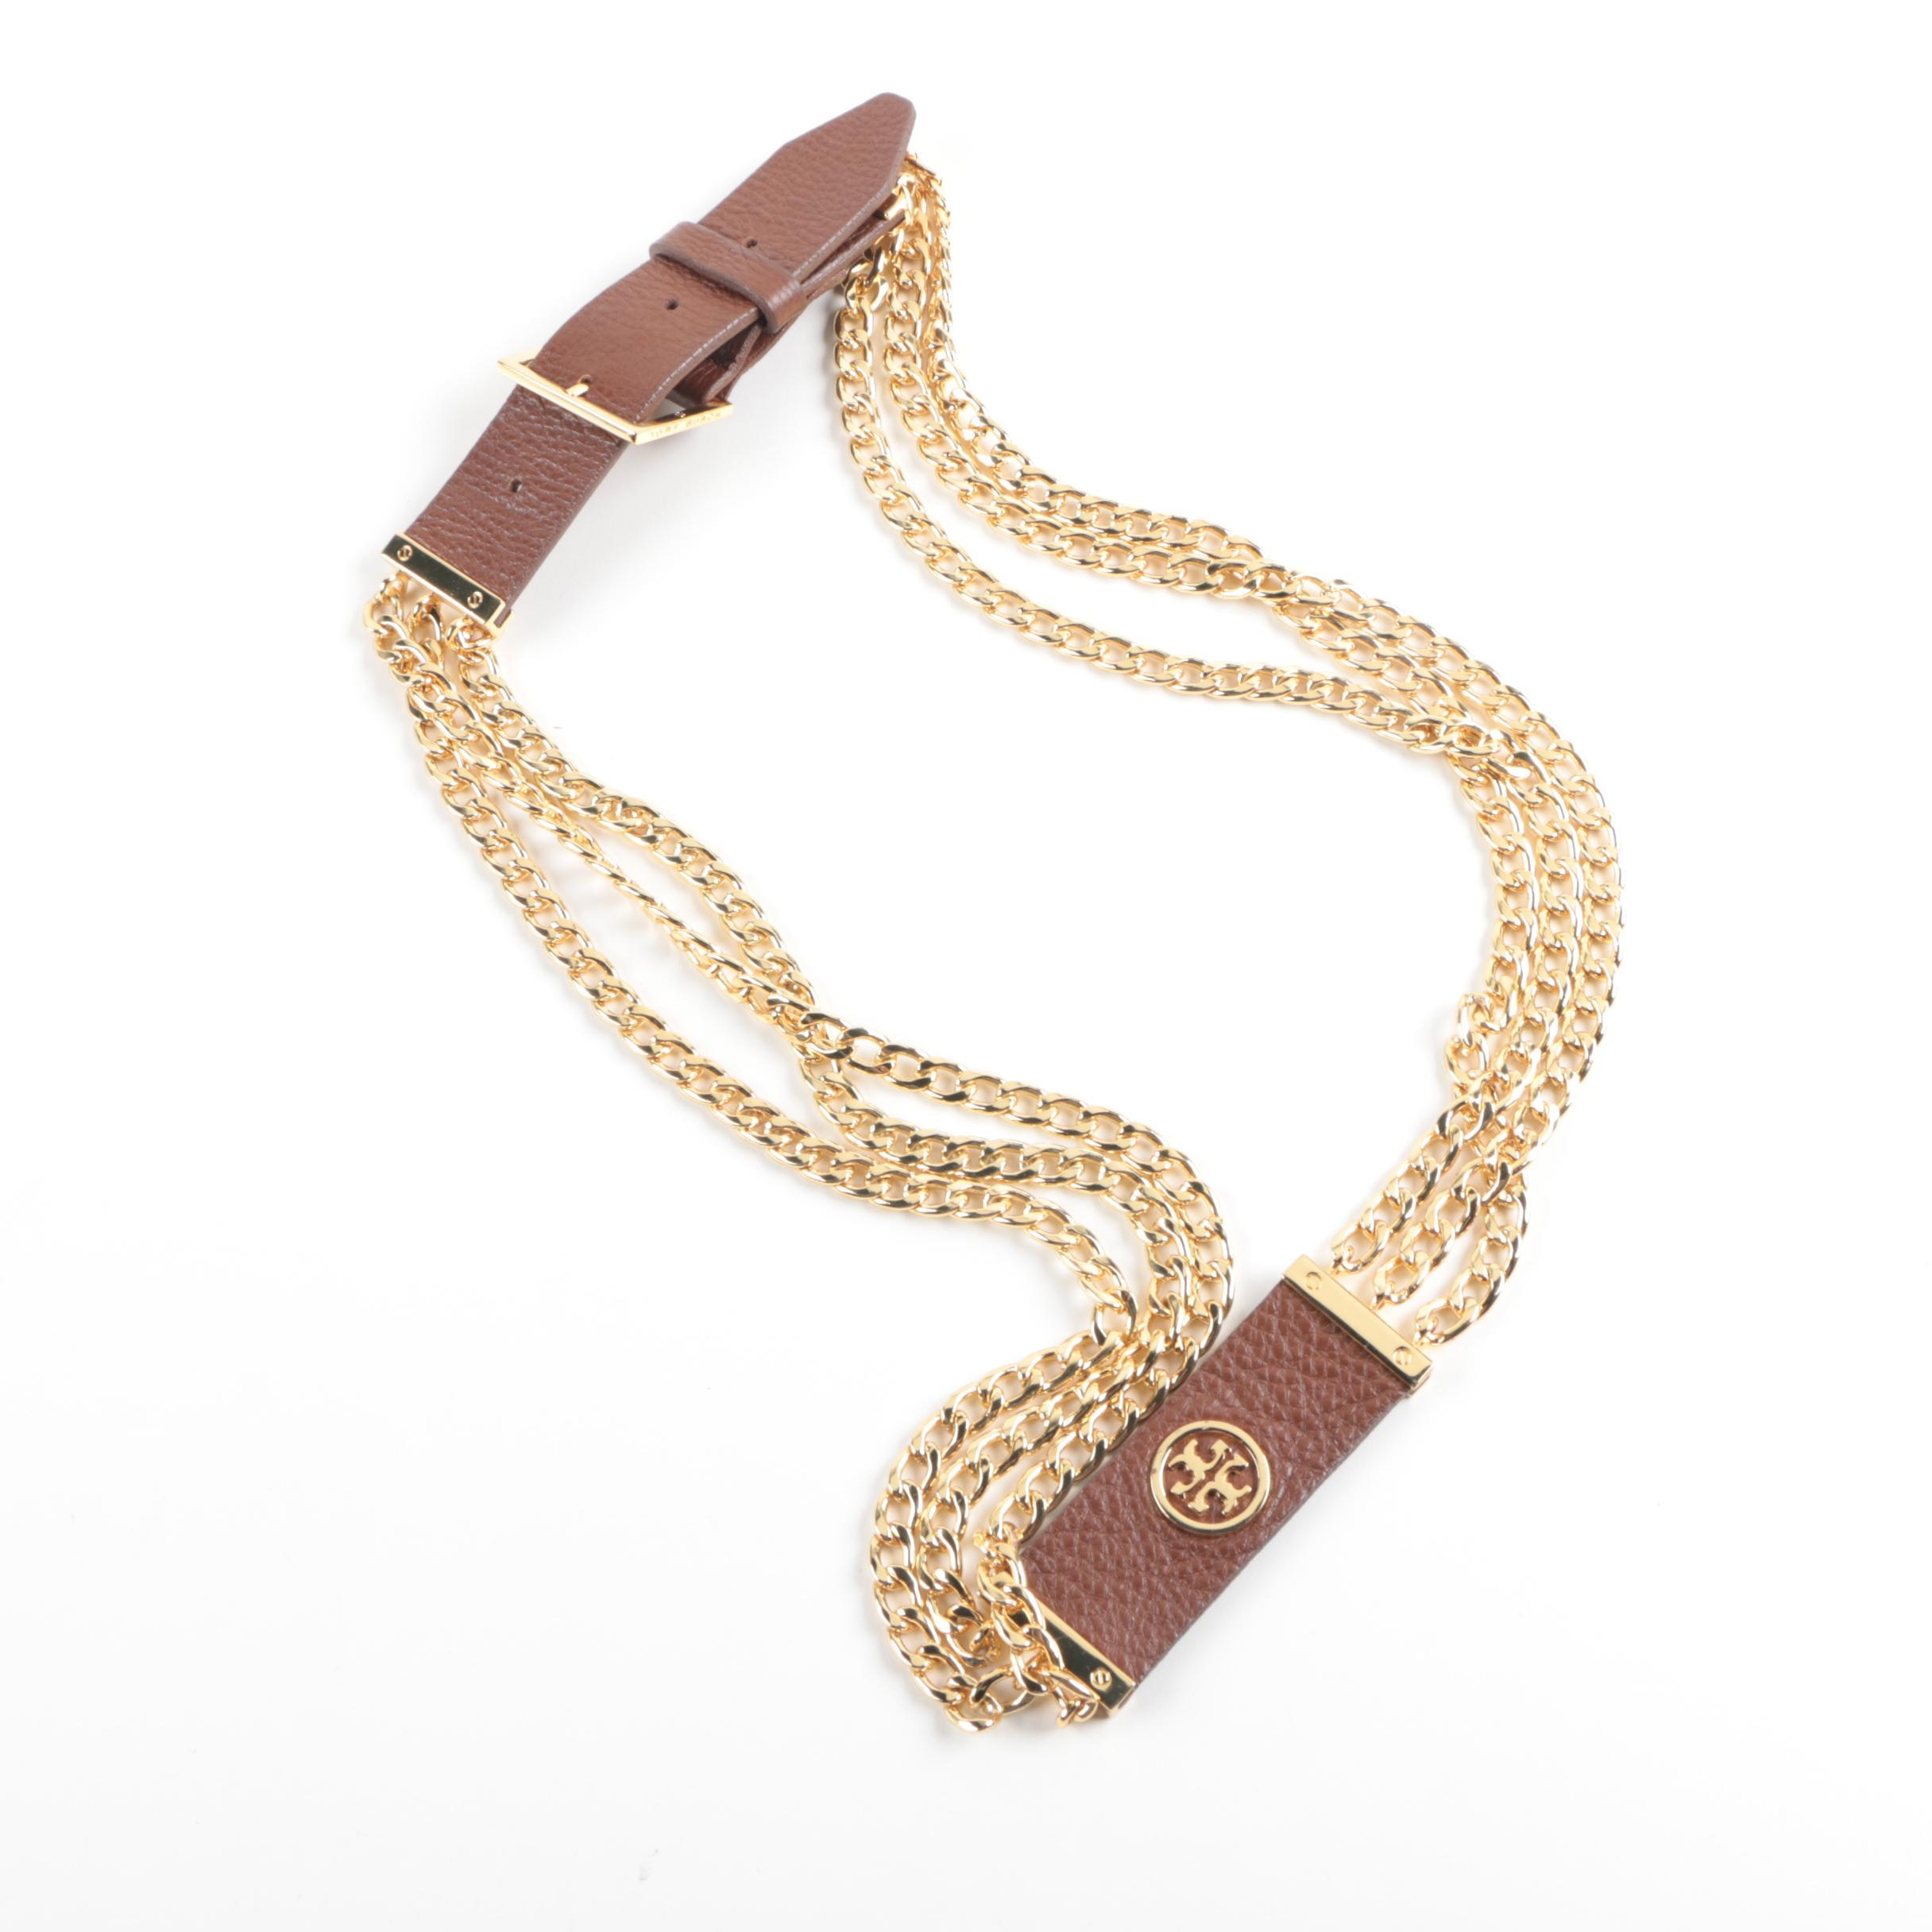 Tory Burch Brown Leather and Gold Tone Chain Belt